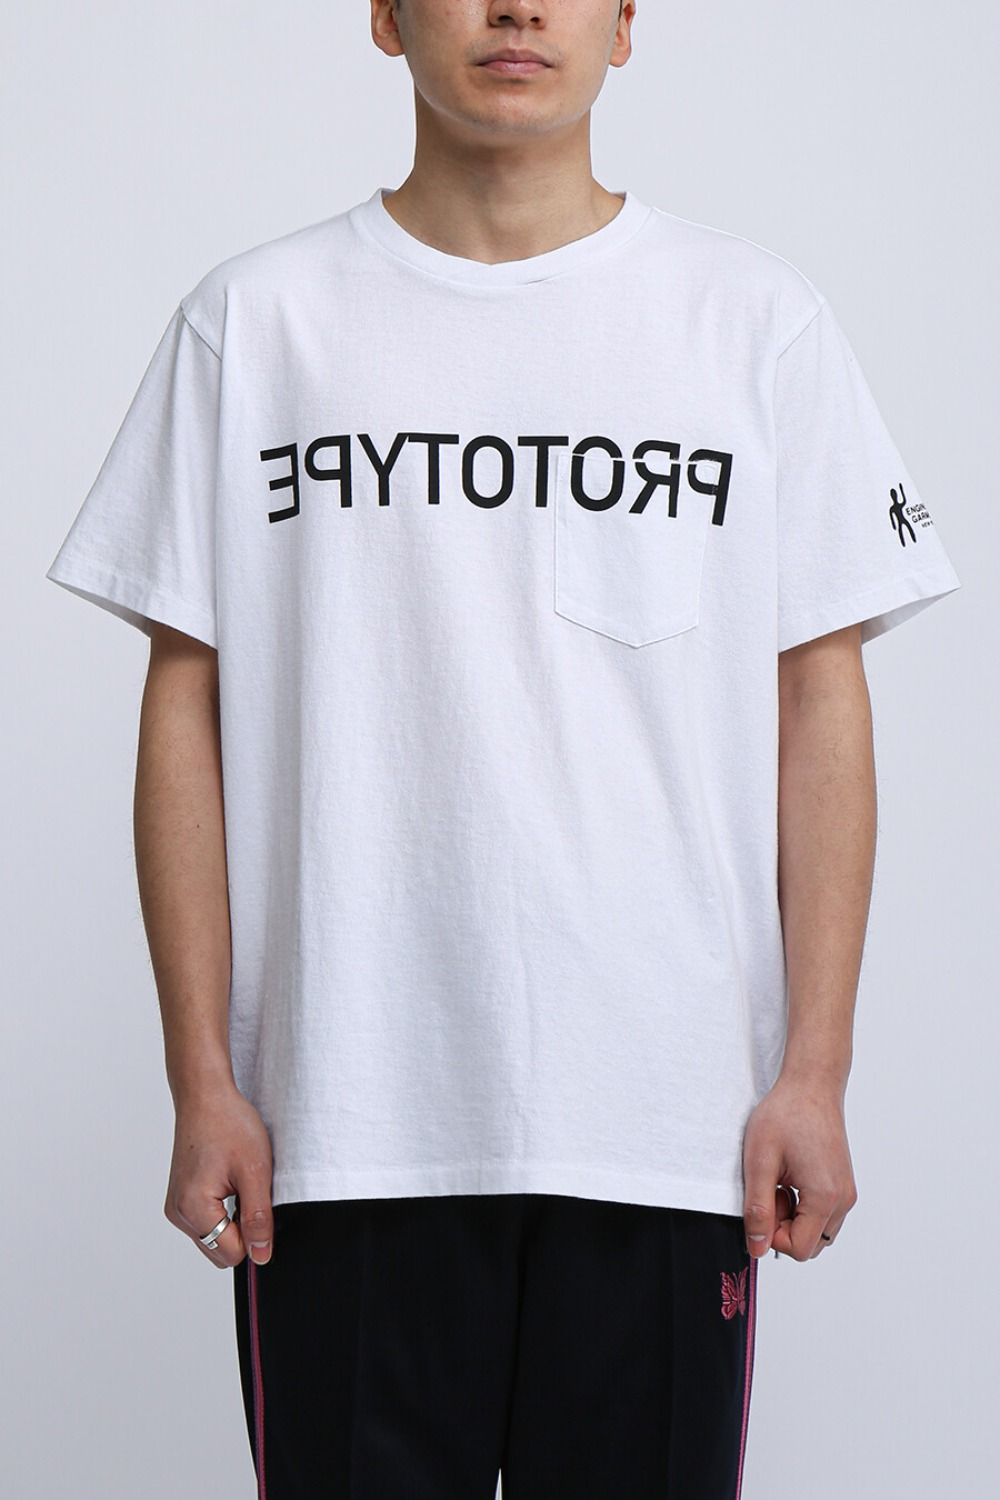 FOR SCULP X PRINTED CROSS CREW NECK T-SHIRT PROTOTYPE WHITE